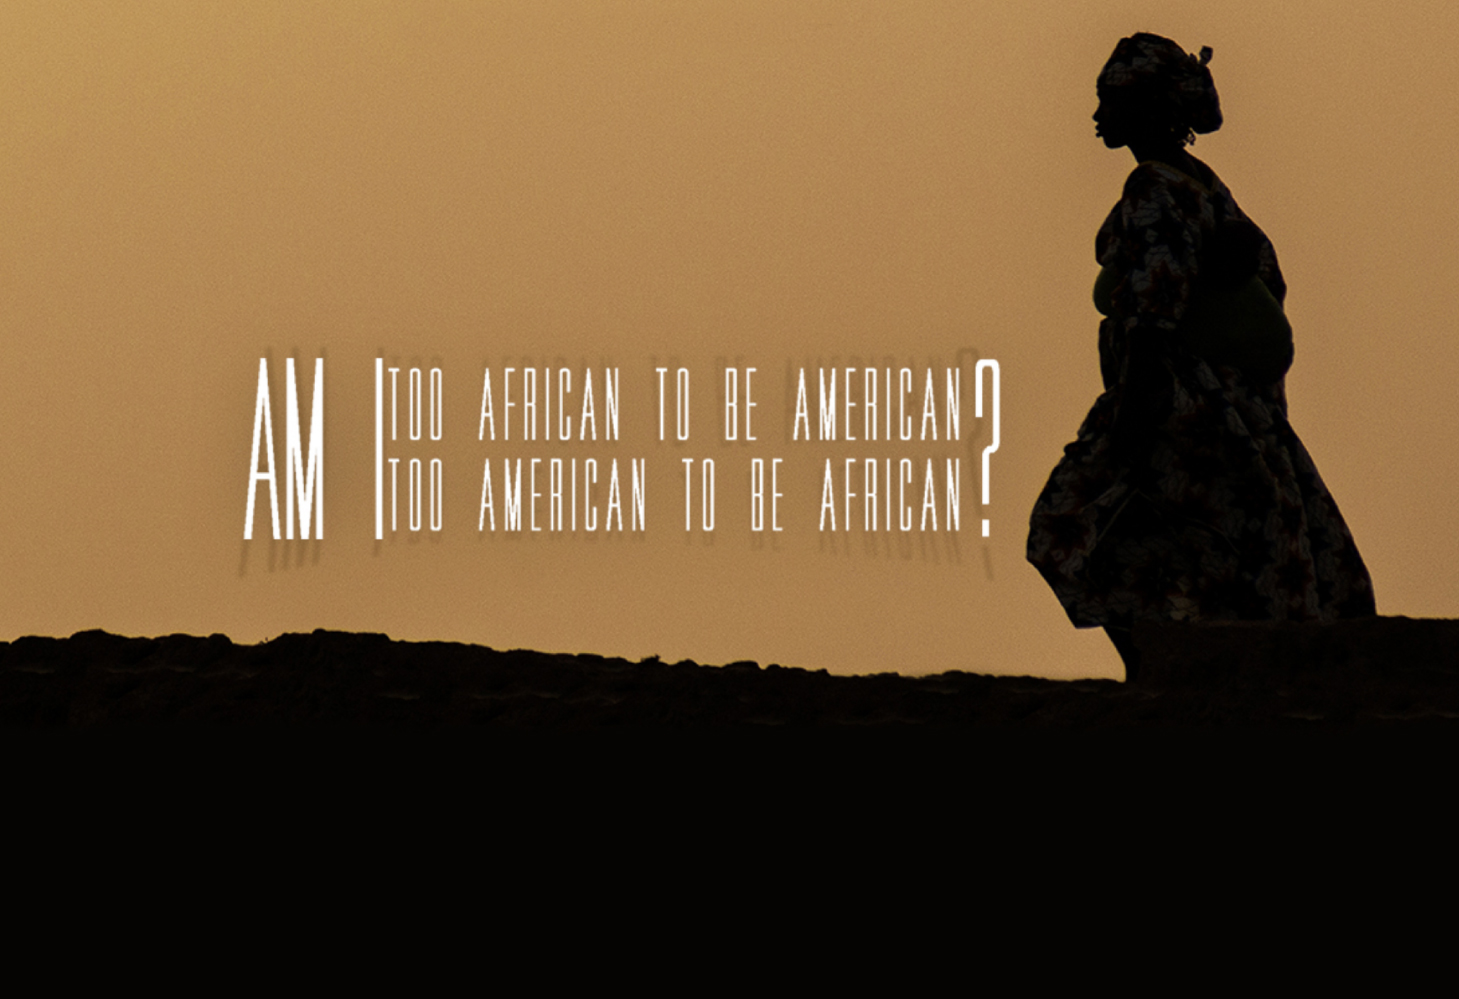 Moca moving images: am i too african to be american? too american to be african?